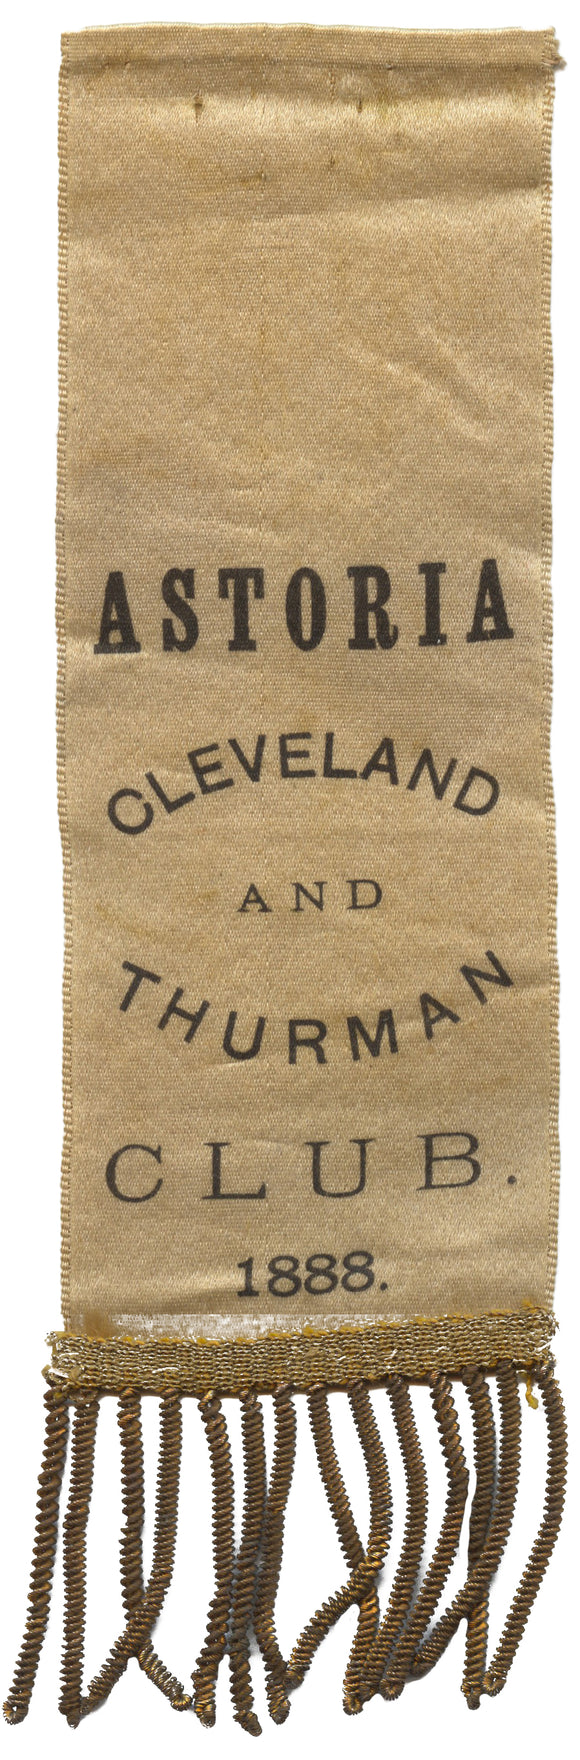 ASTORIA (Oregon) CLEVELAND AND THURMAN CLUB. 1888.